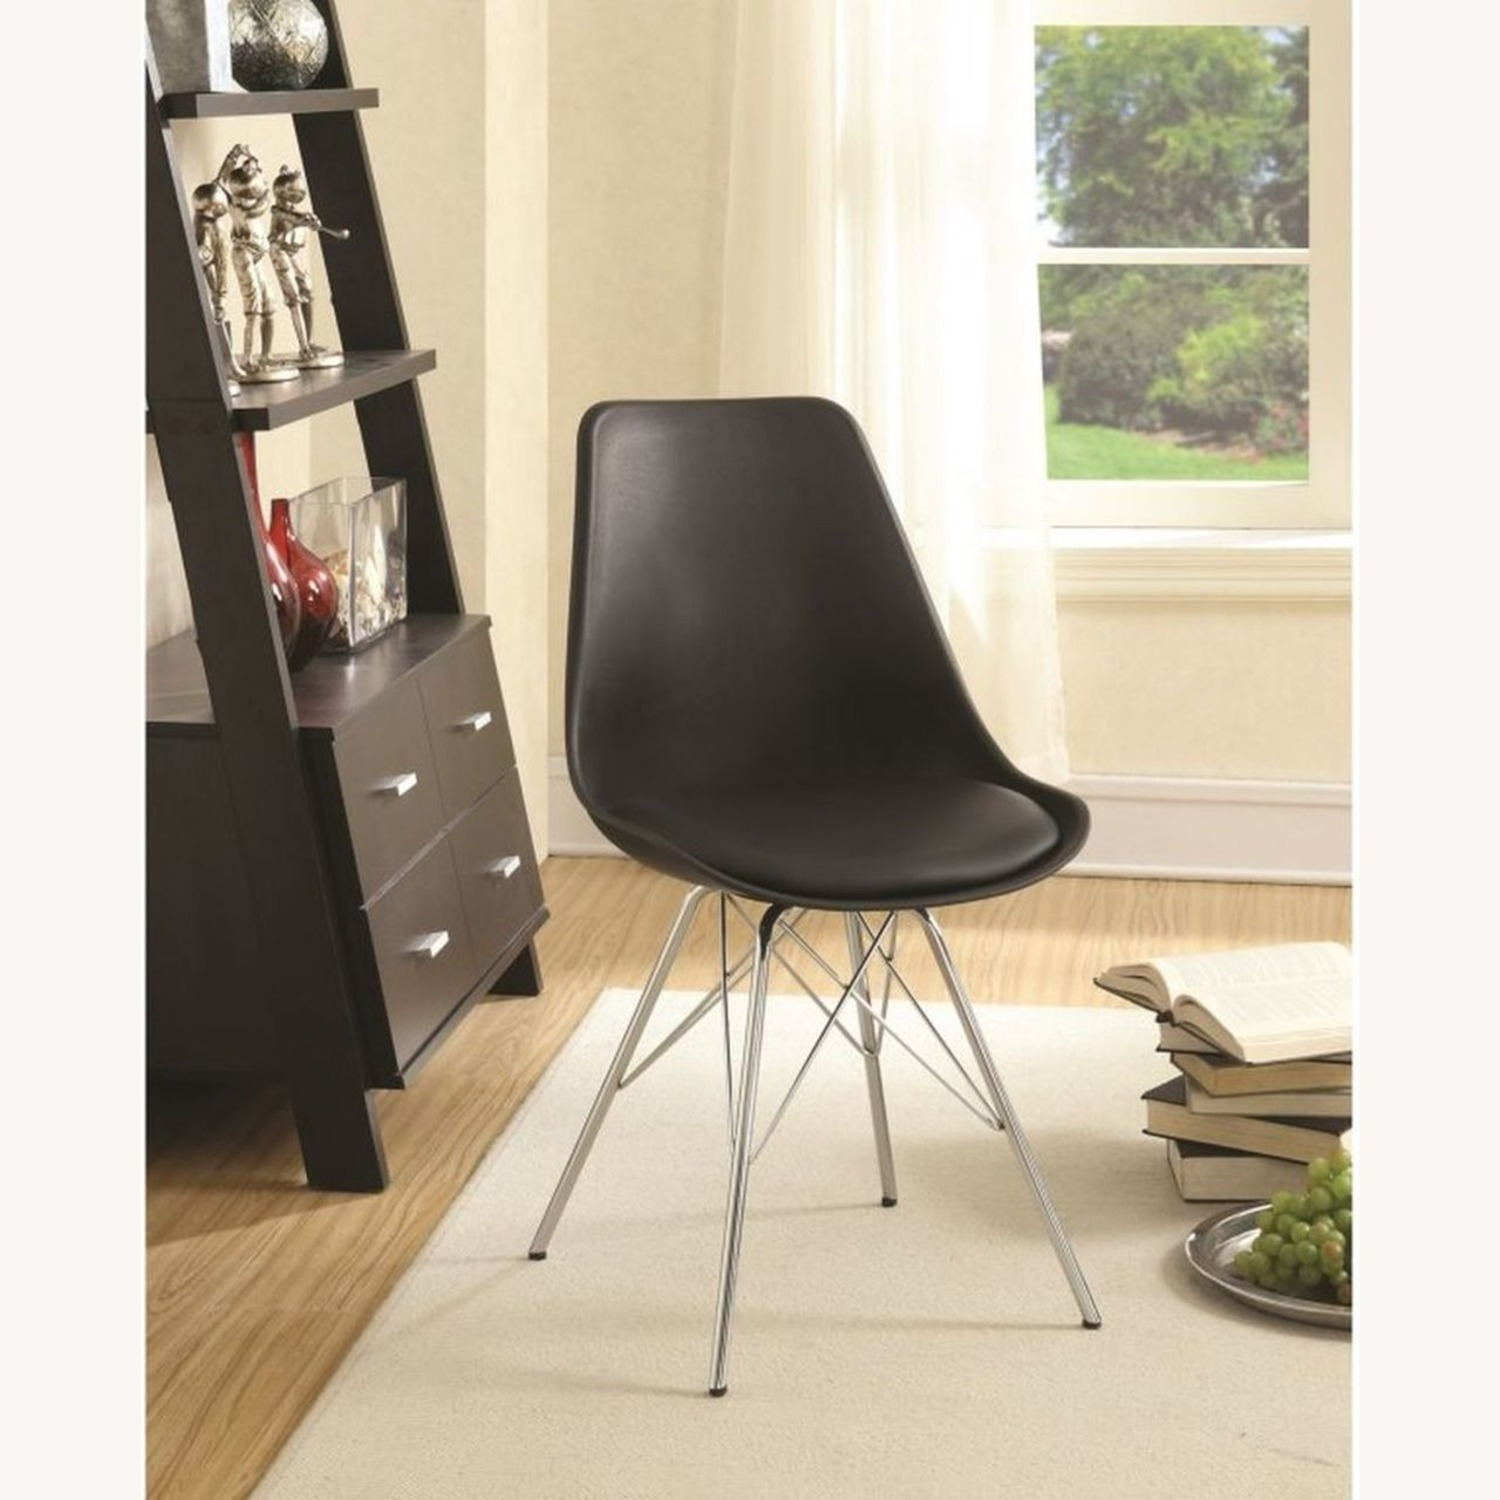 Modern Black Side Chair W Padded Cushion - image-4